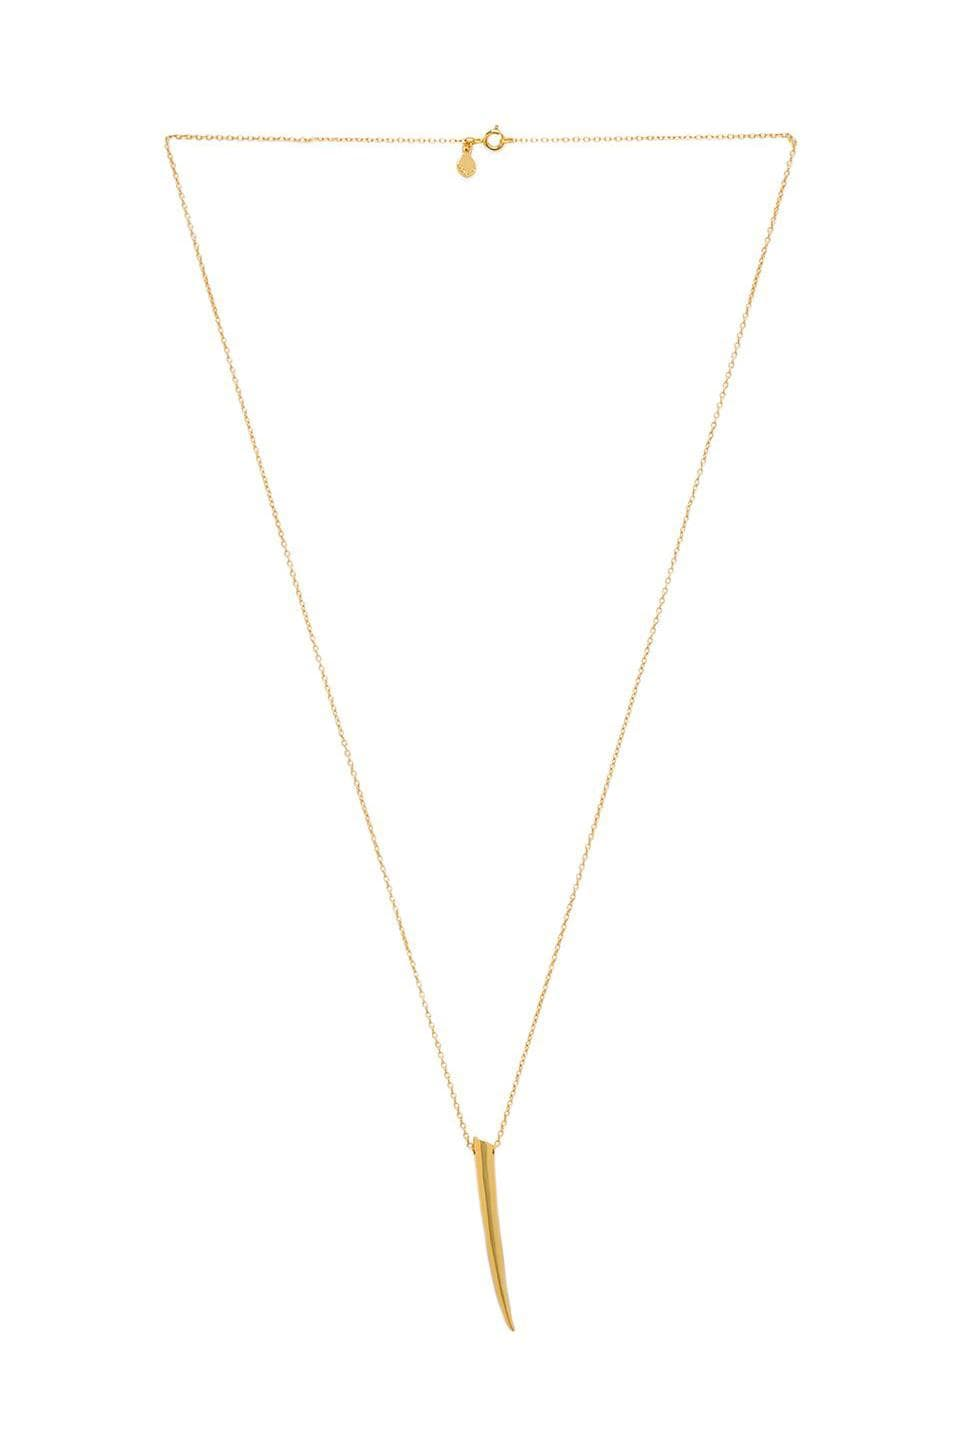 gorjana Fancy Horn Long Necklace in Gold